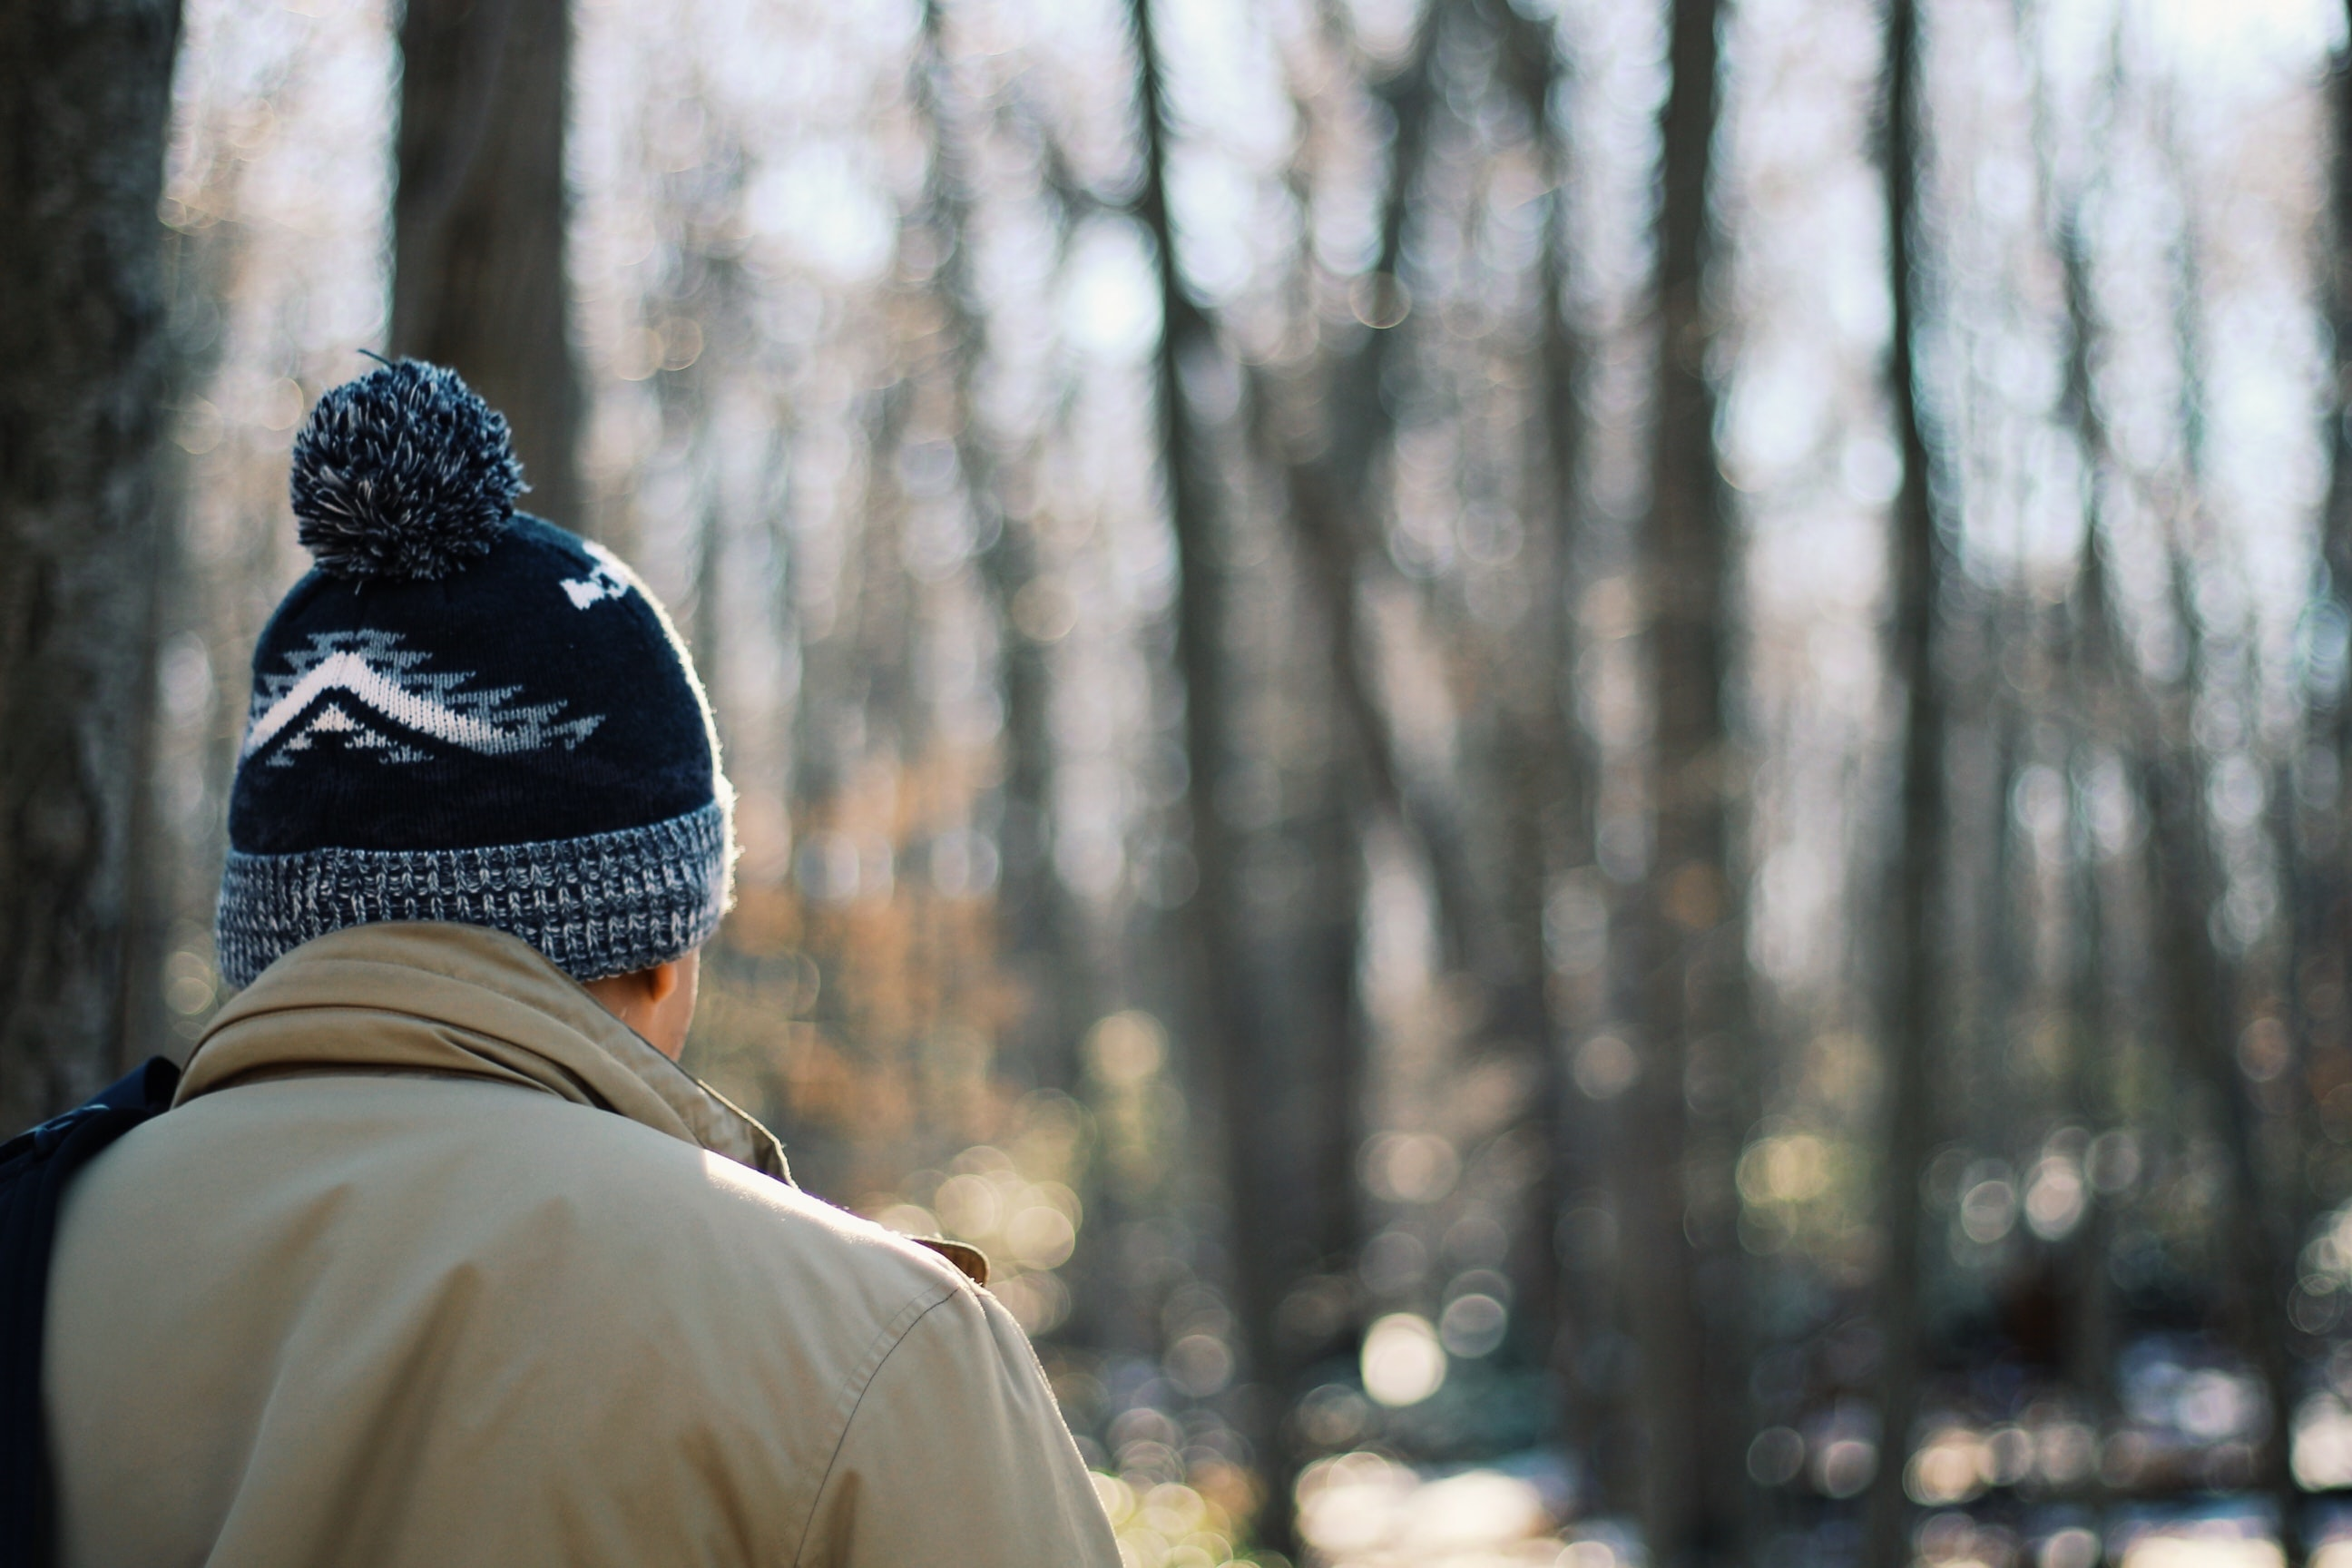 A man in a knit cap standing back to camera in a forest